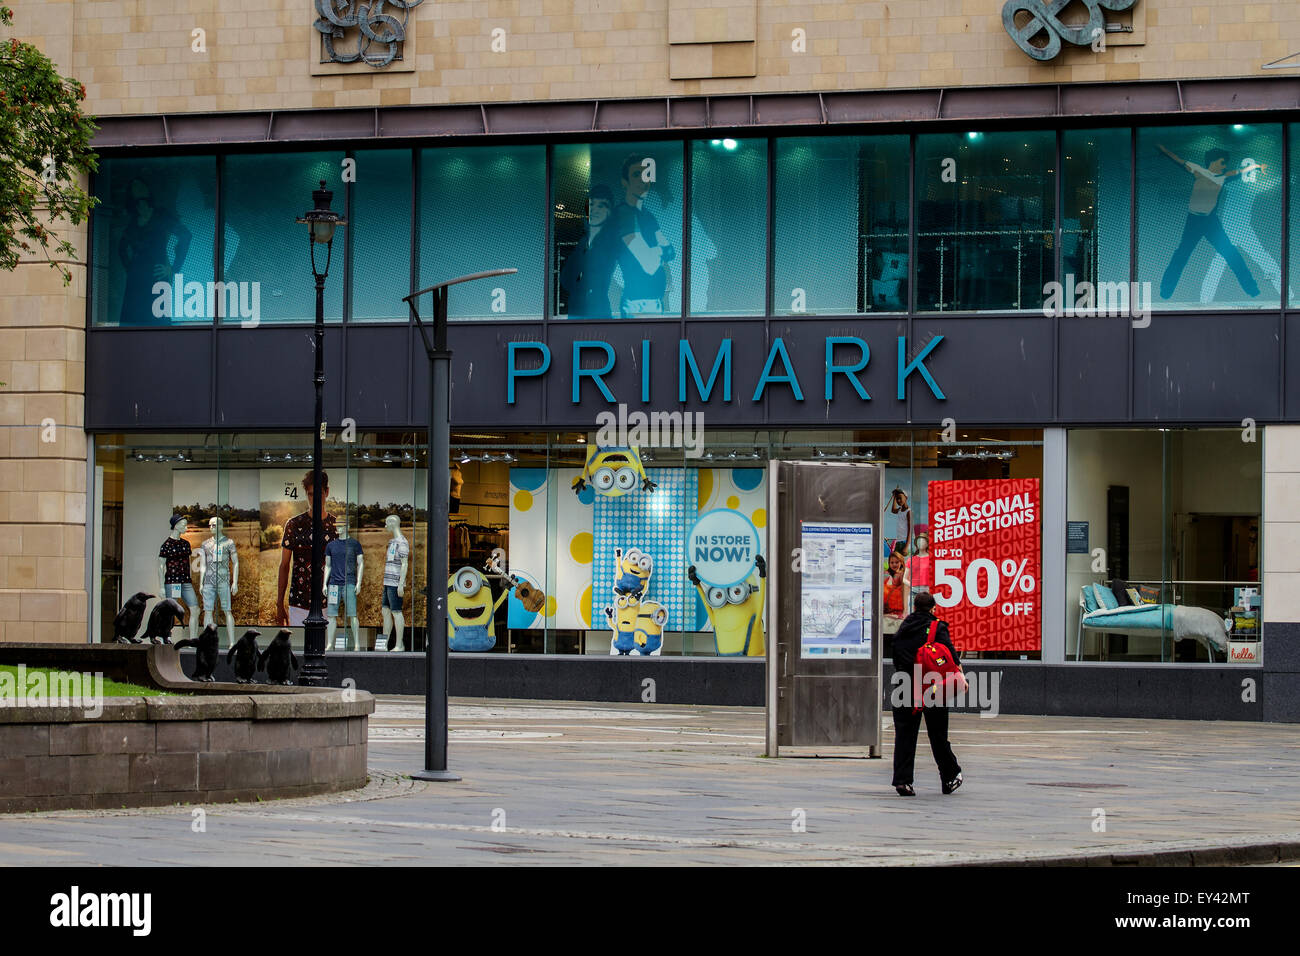 Dundee, Scotland, UK. 21st July, 2015. Sales: Mid Summer Sales in Dundee. Primark the outlet fashion store at the Stock Photo